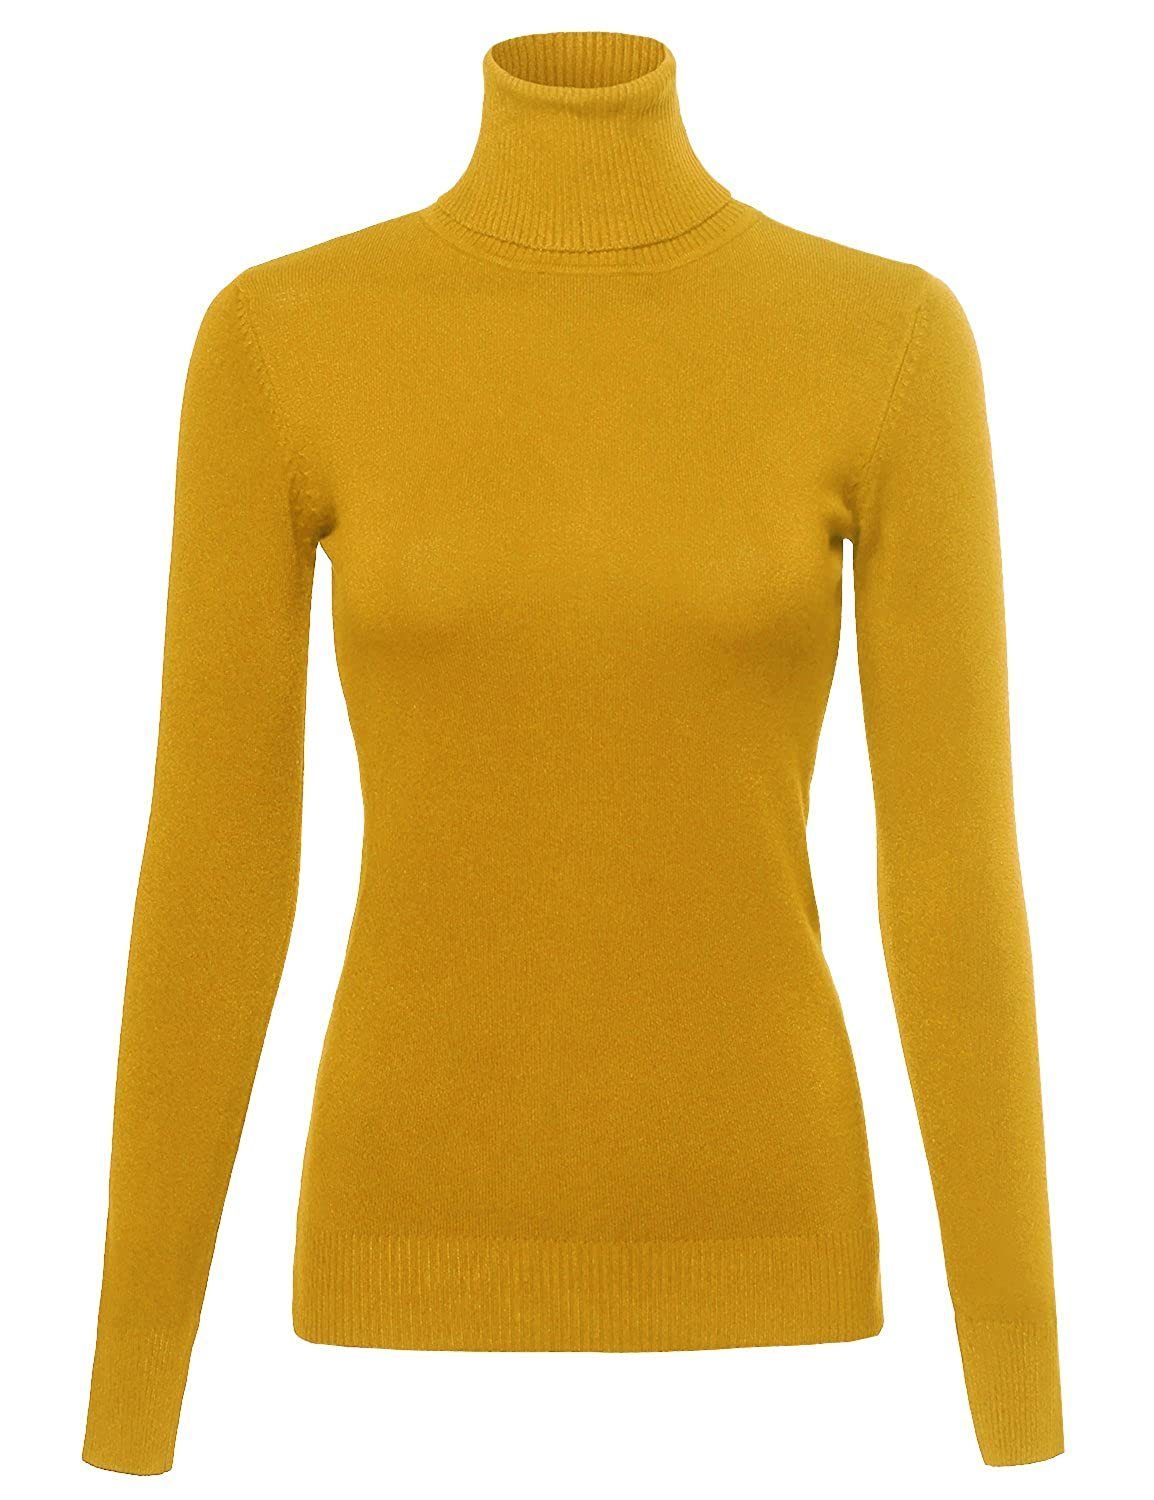 Made by Emma Women's Basic Slim Fit Lightweight Ribbed Turtleneck Sweater